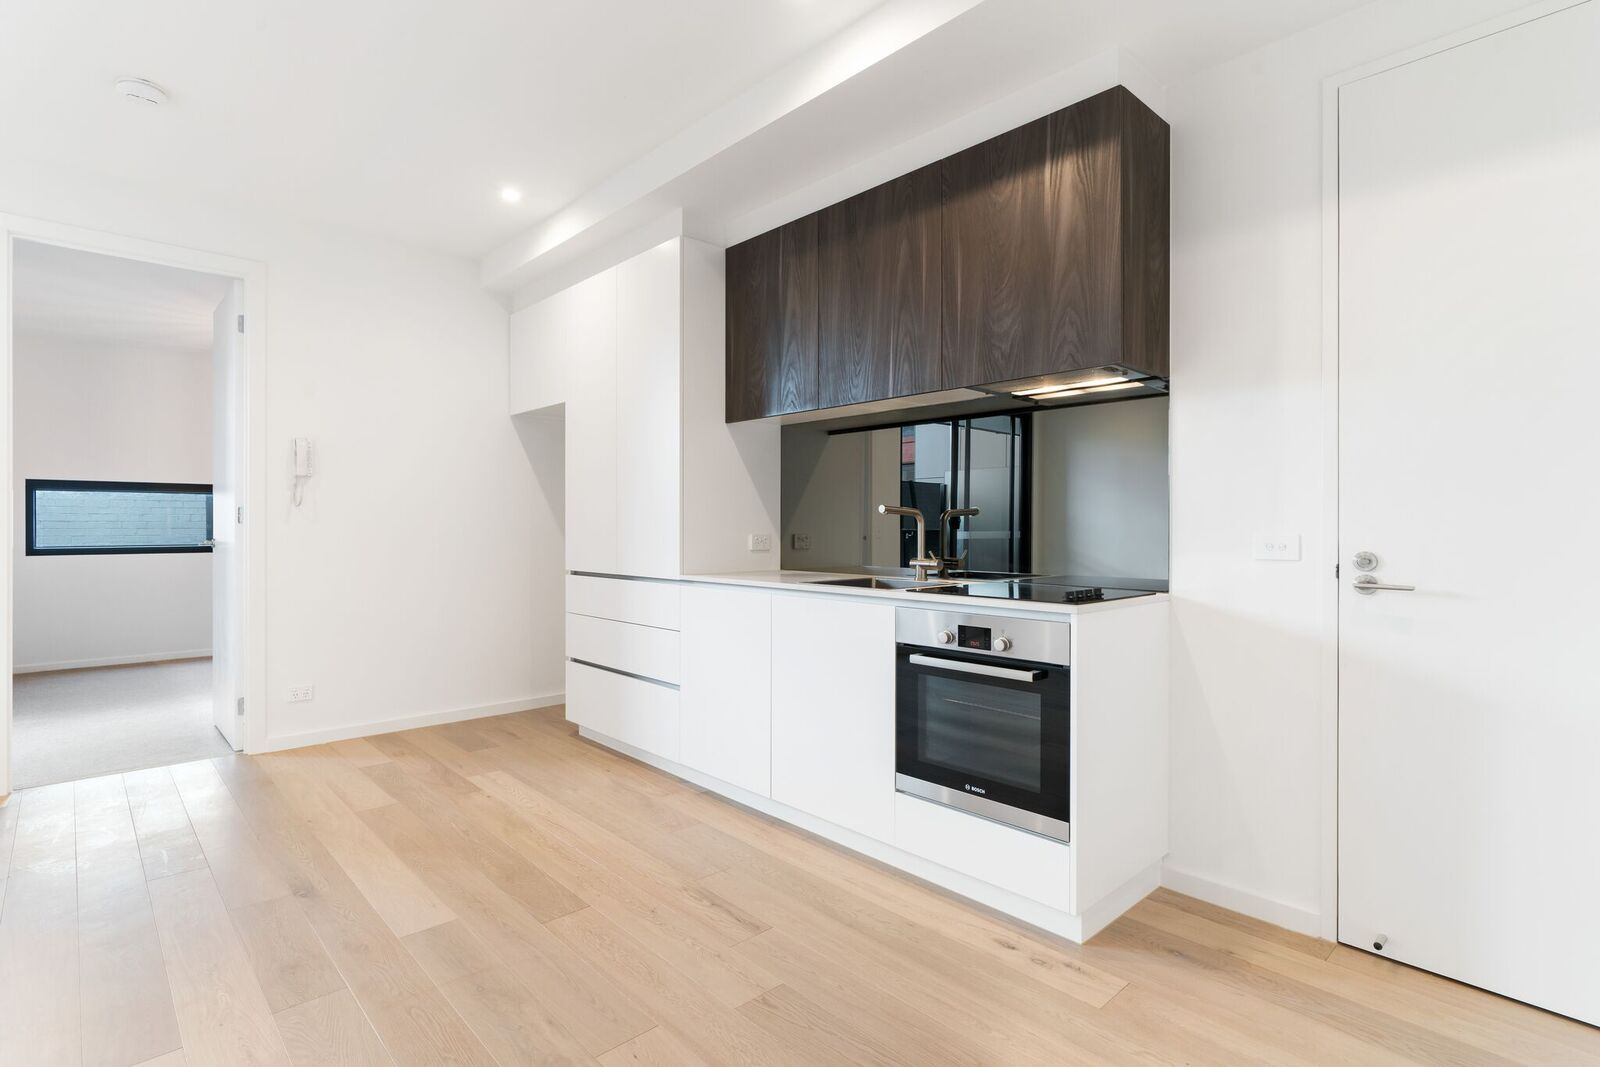 206-108-munster-terrace-north-melbourne-student-accommodation-Melbourne-Kitchen-Unilodgers